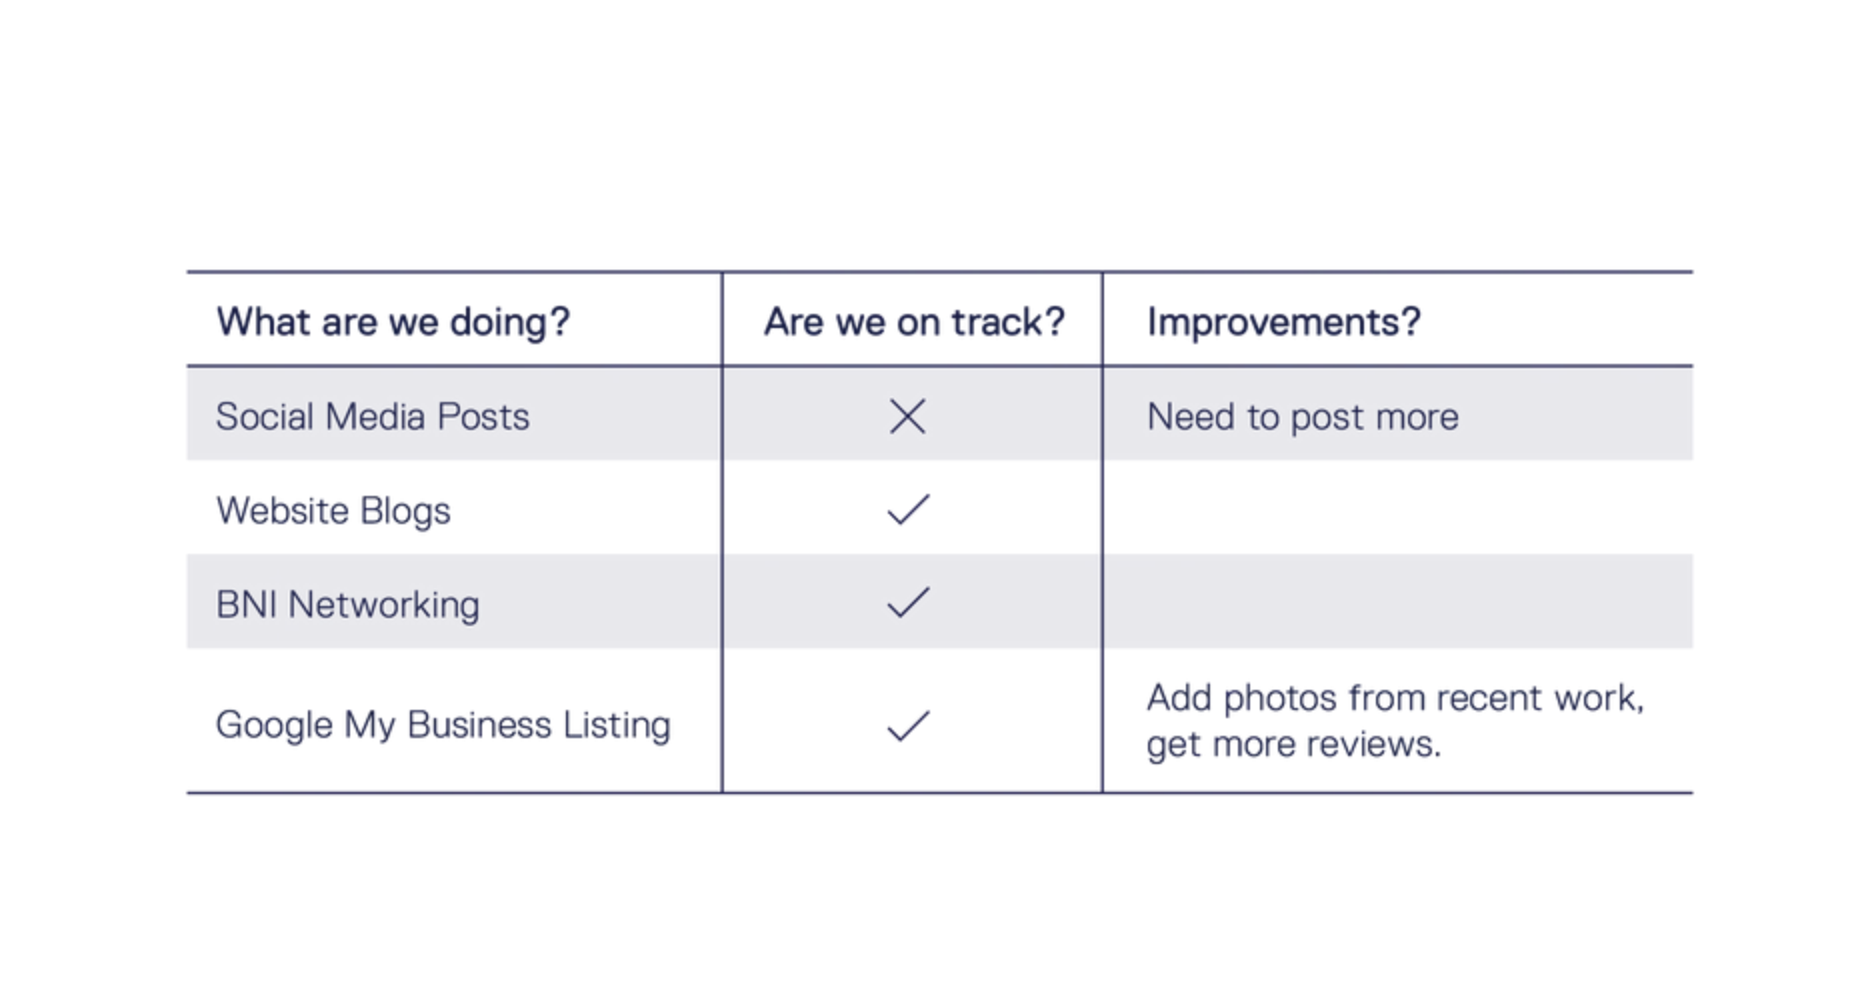 Creating an Actionable Marketing Plan